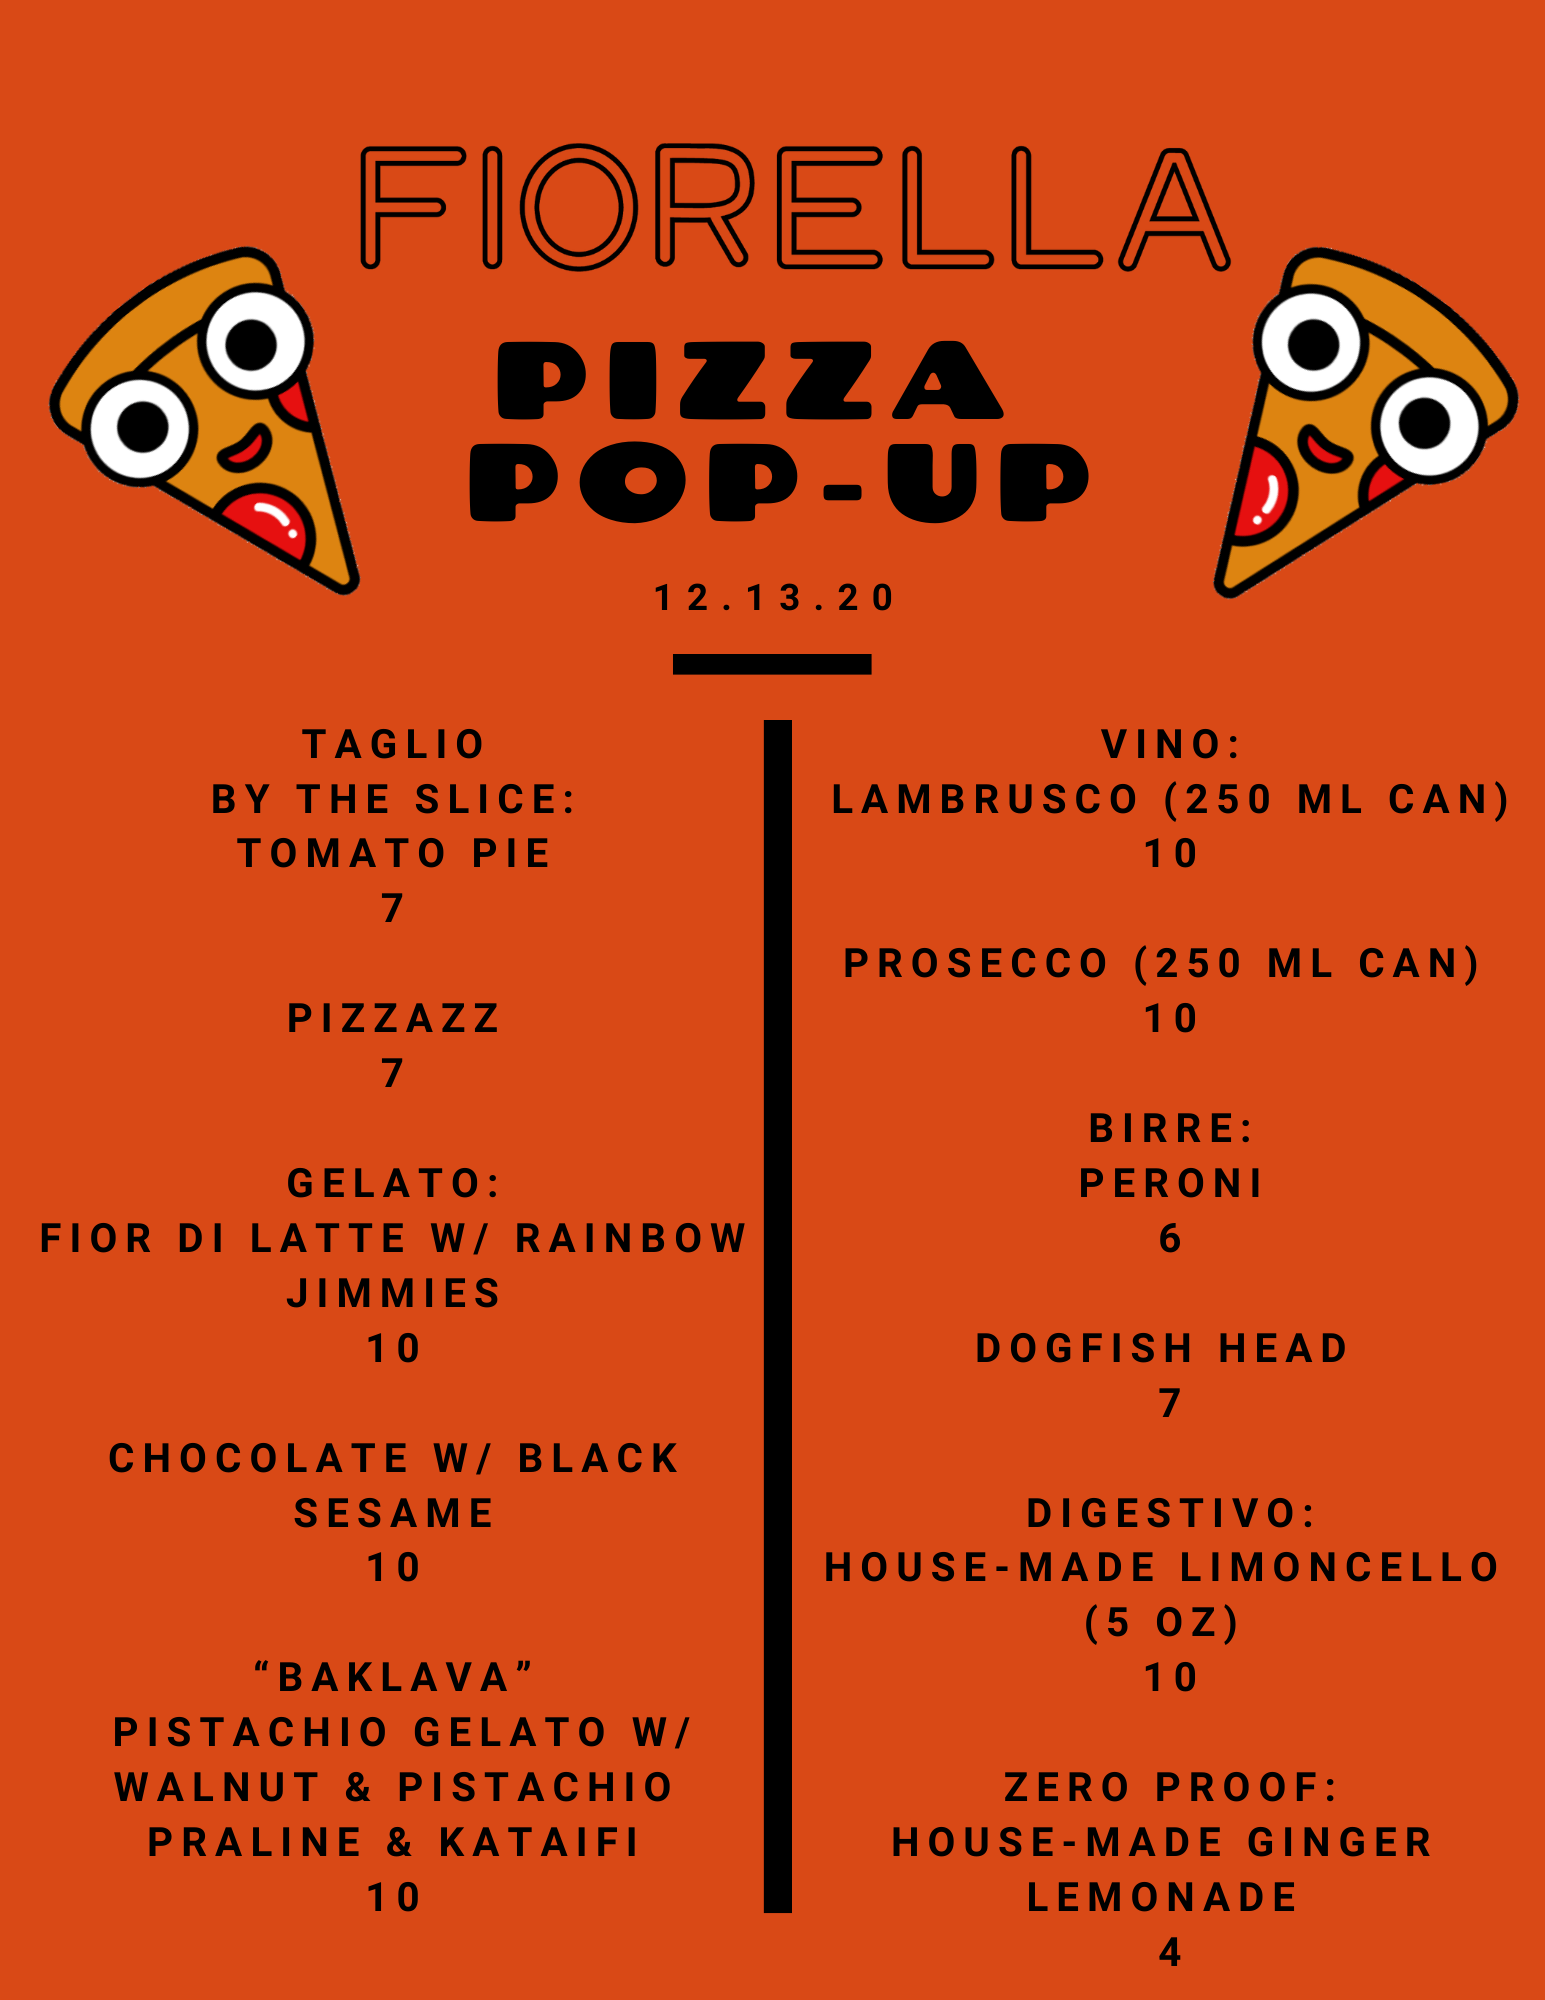 PIZZA POP-UP